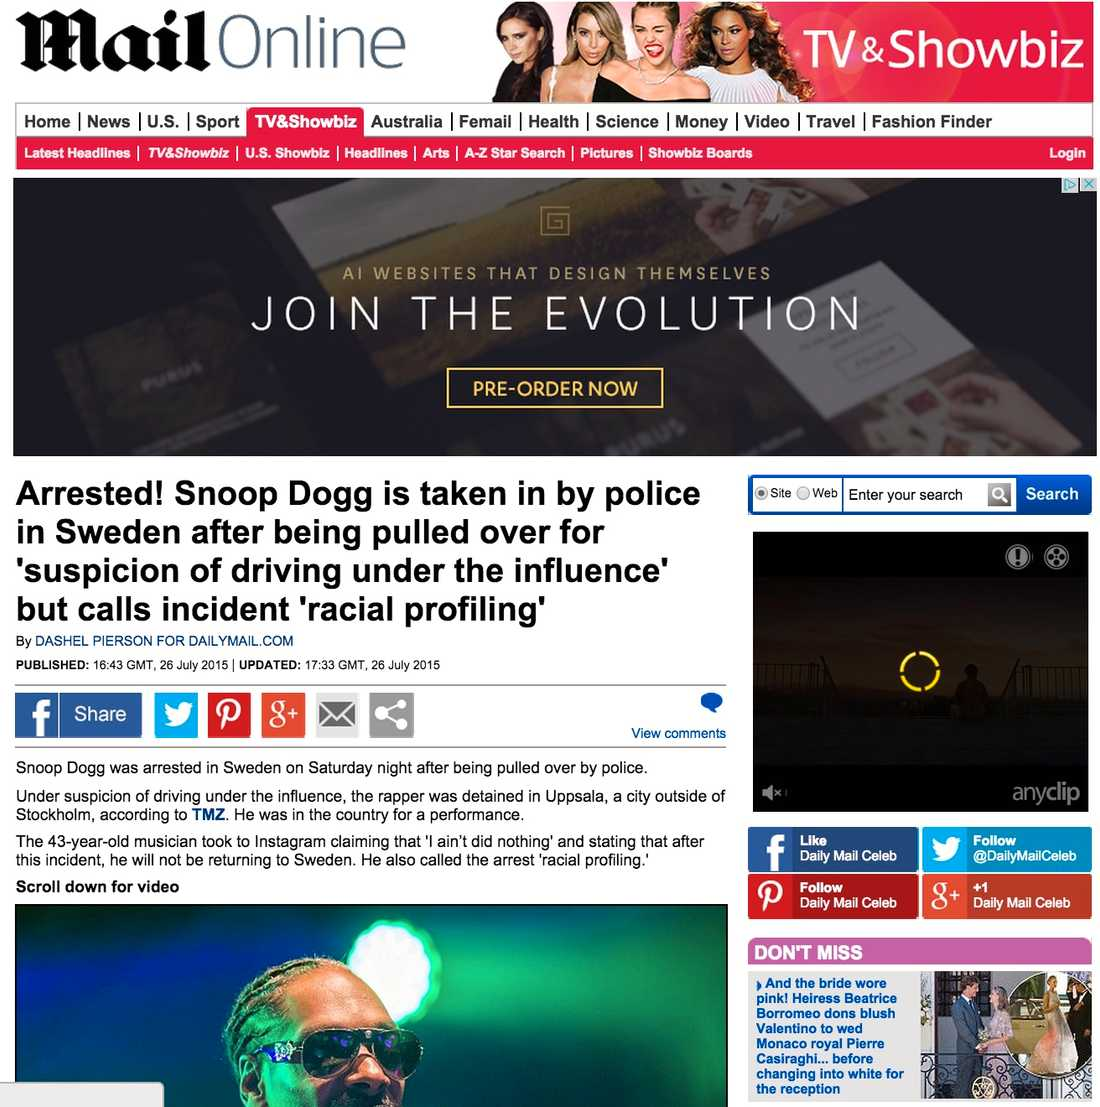 Daily Mail Arrested! Snoop Dogg is taken in by police in Sweden after being pulled over for 'suspicion of driving under the influence' but calls incident 'racial profiling'